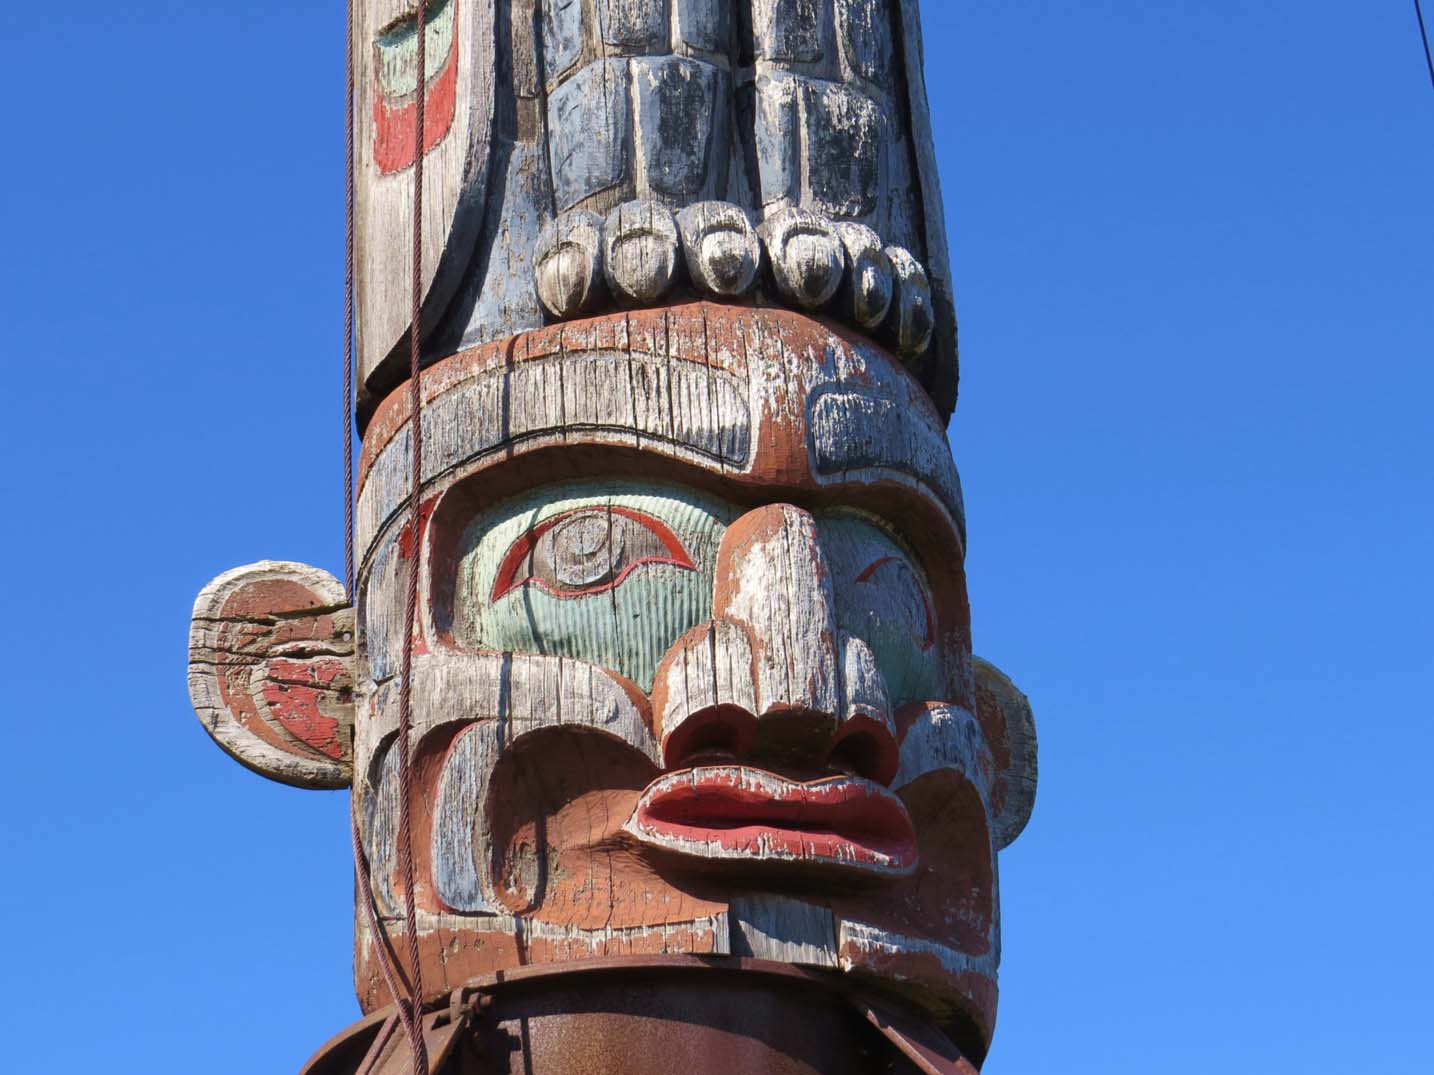 Carved wooden totem pole